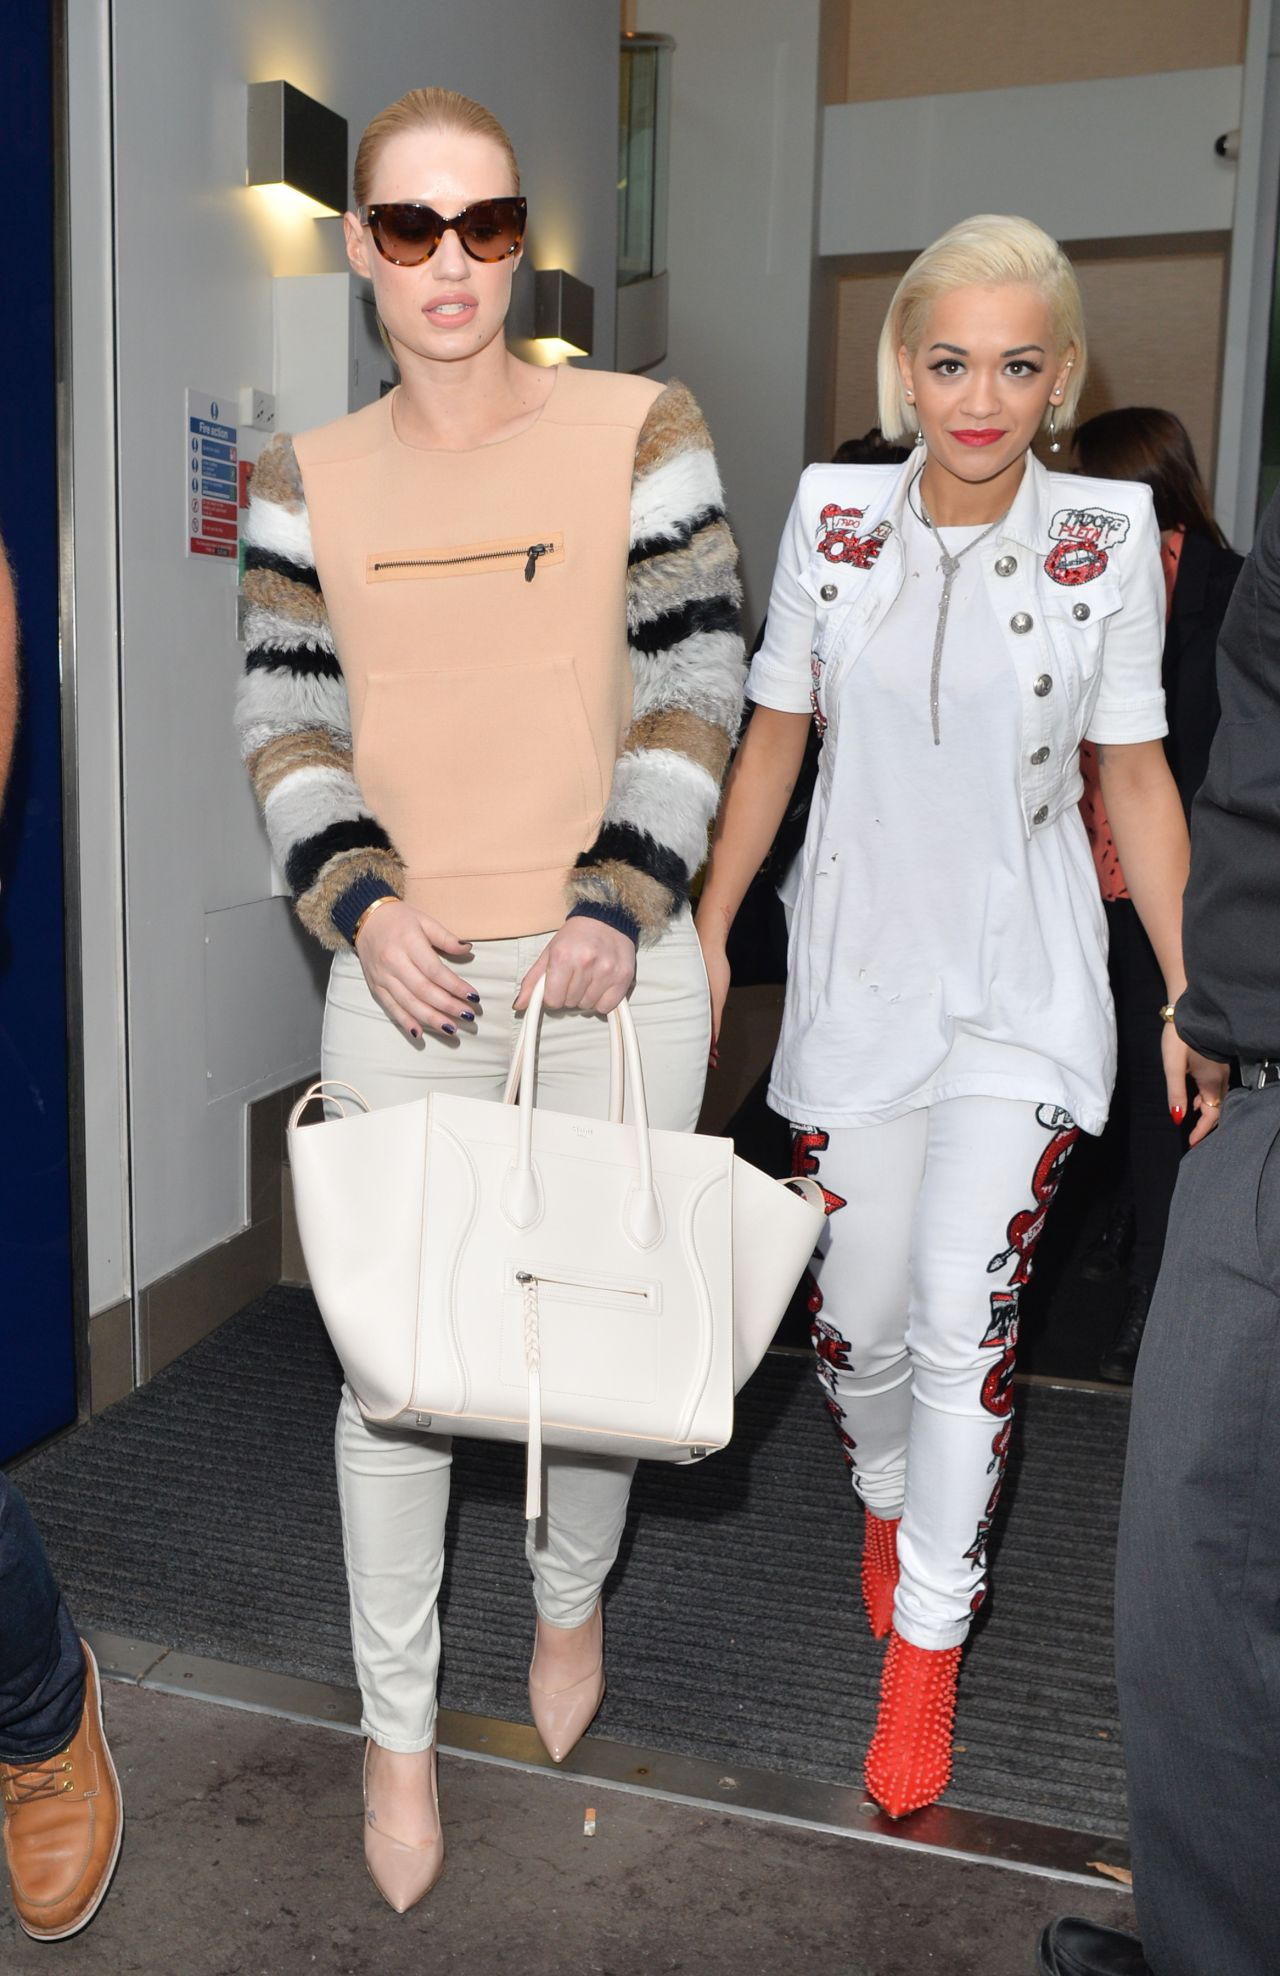 Rita Ora & Iggy Azalea Visited Capital FM in London - September 2014